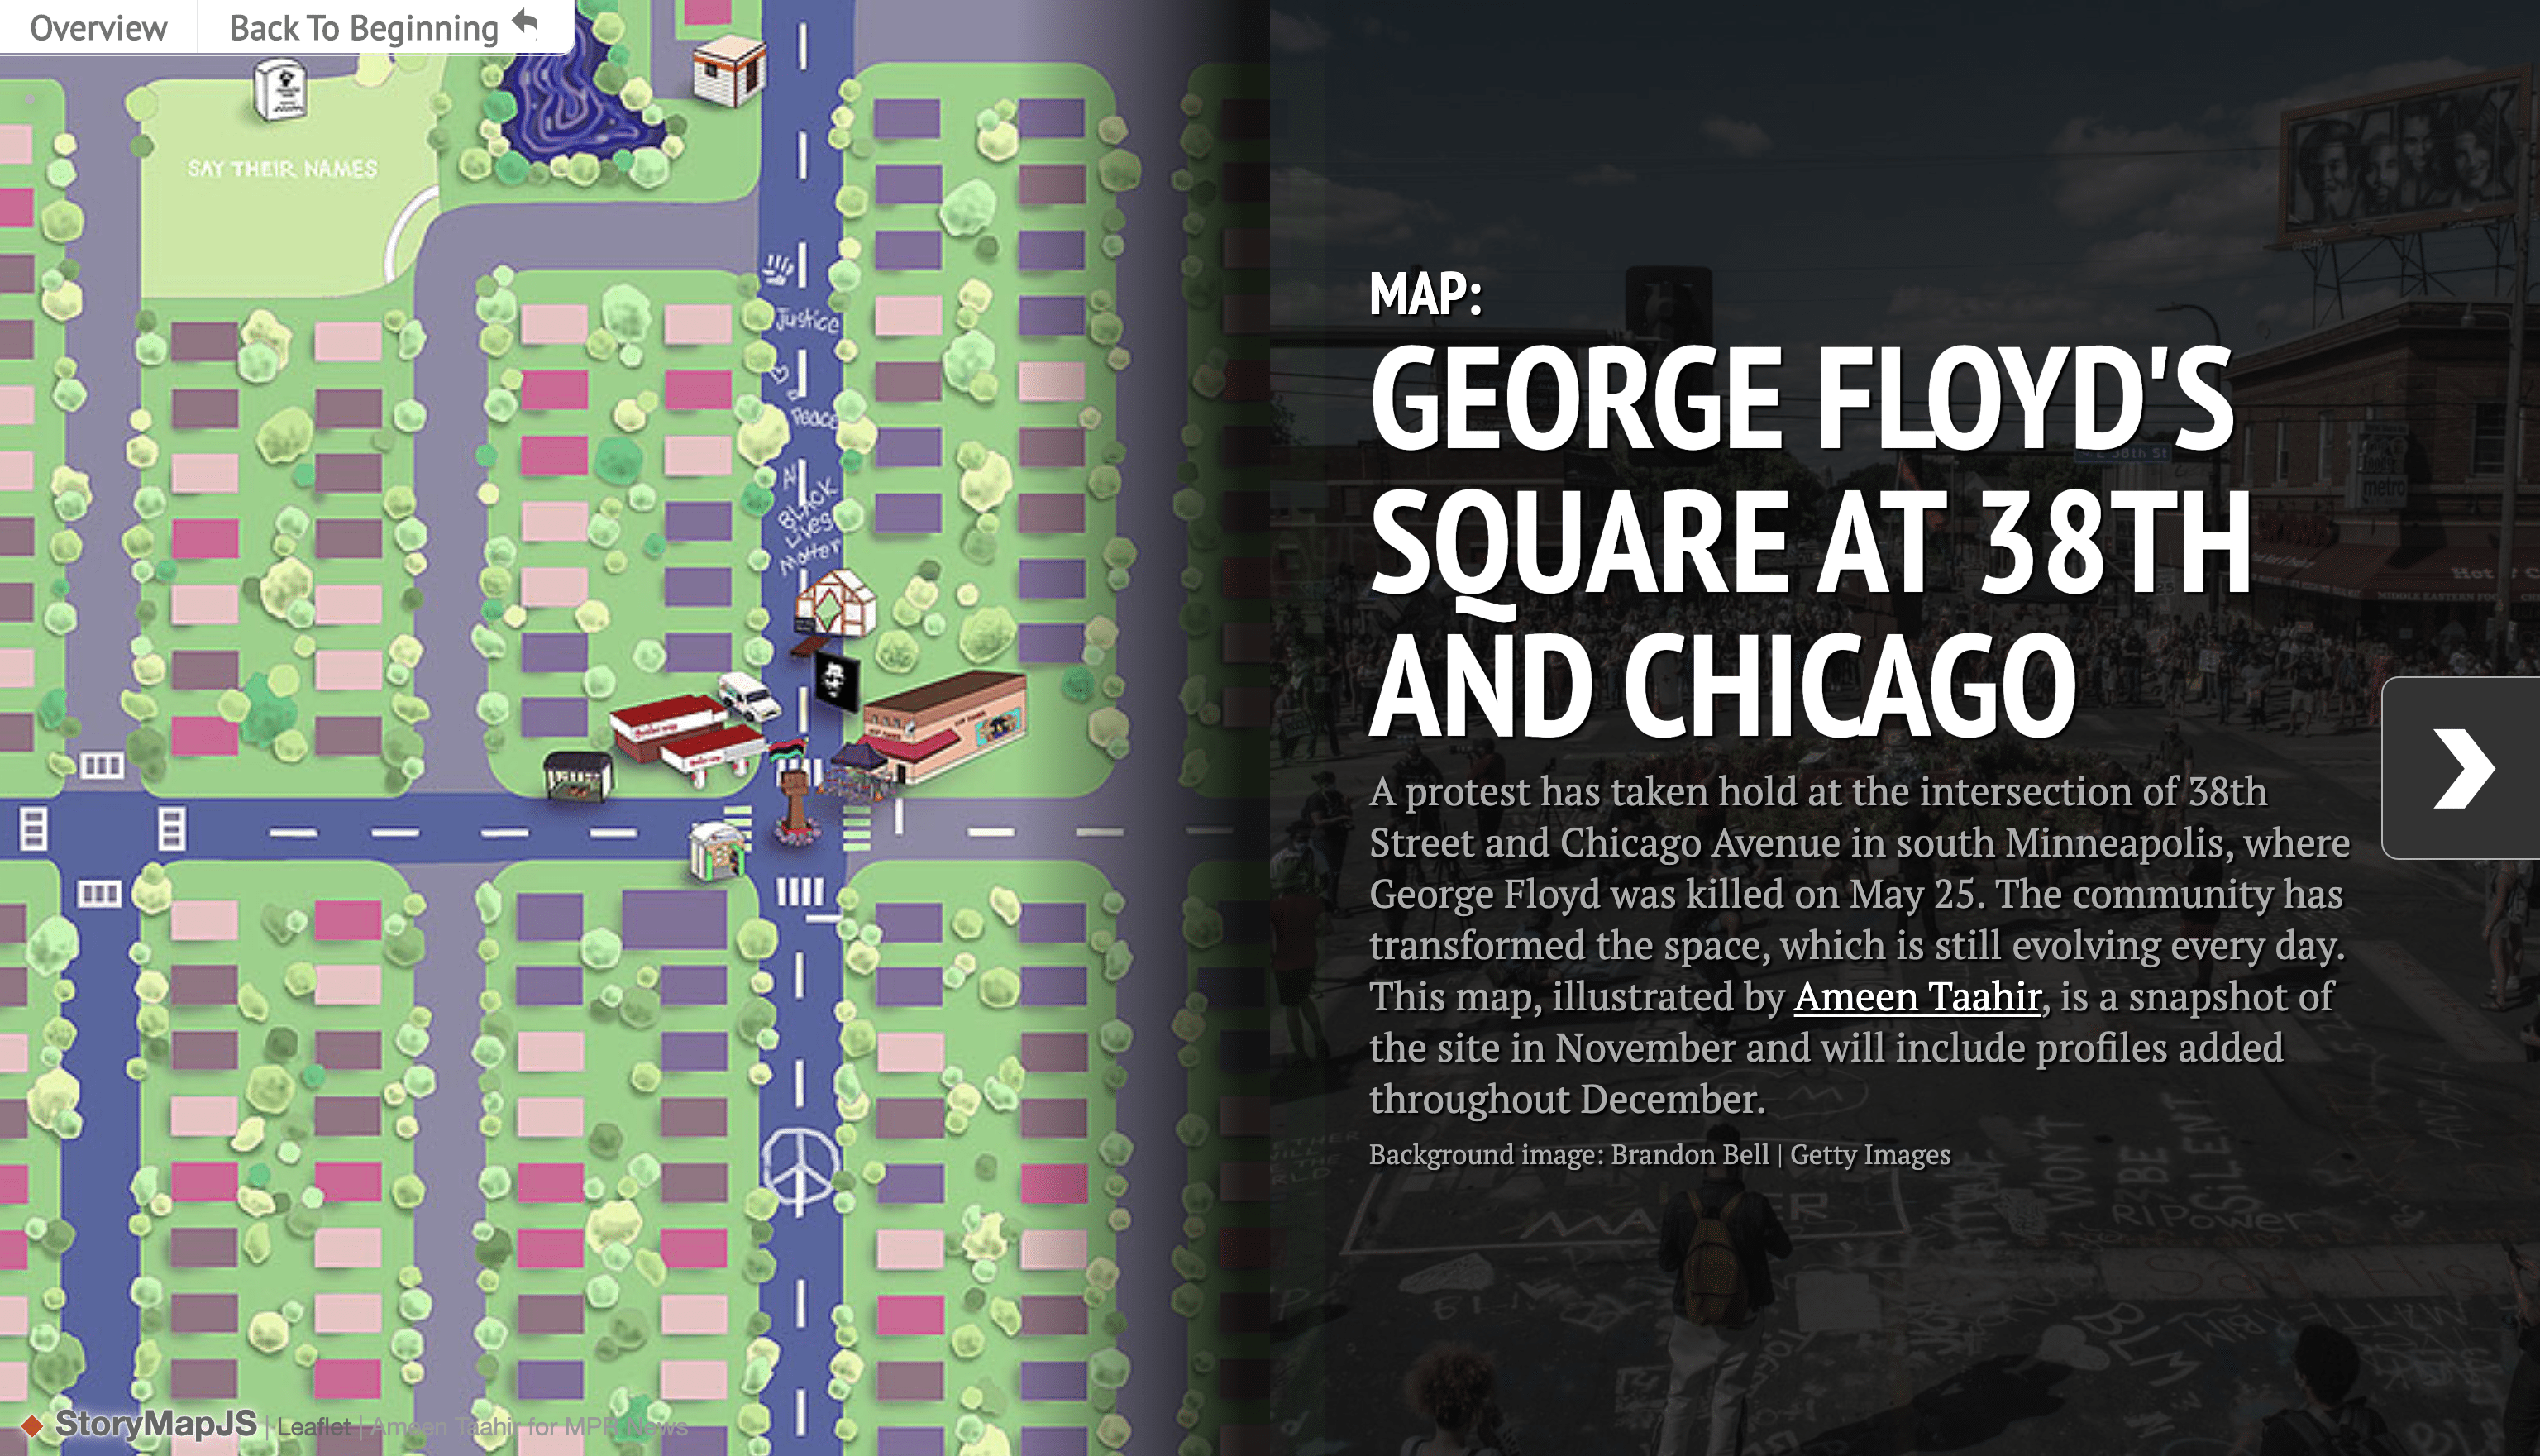 Click the image to view the full map of George Floyd's Square.